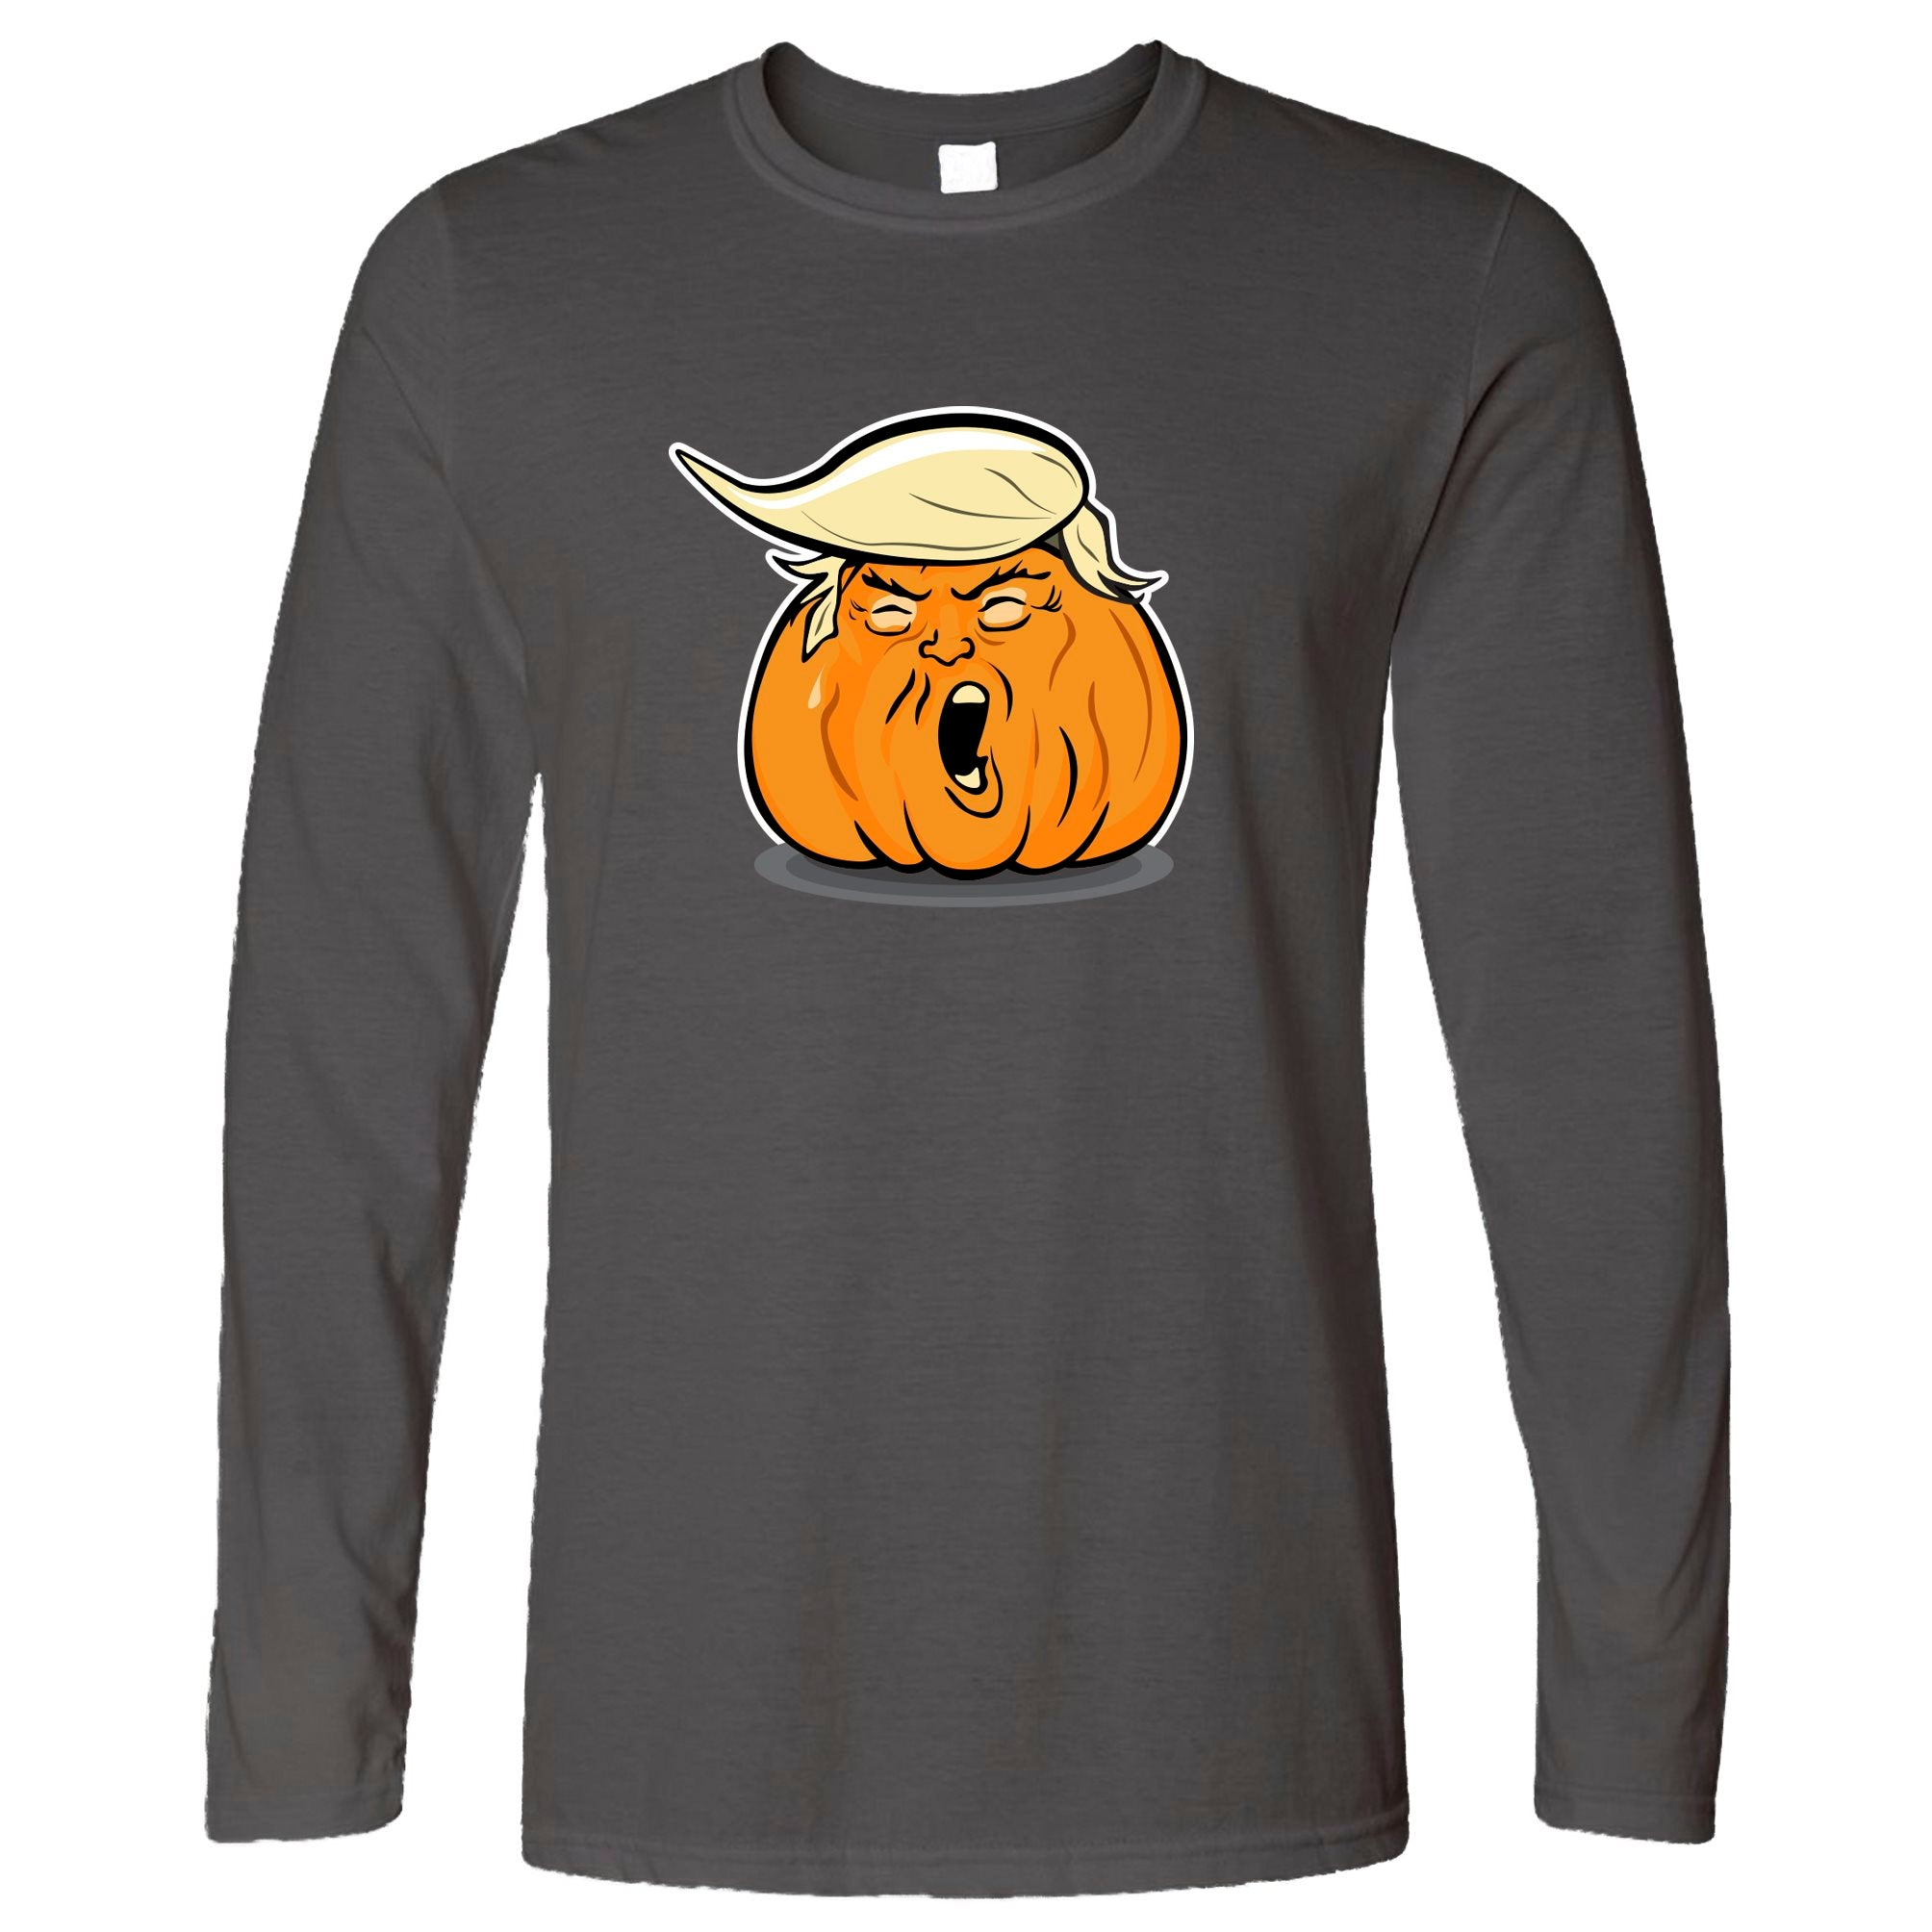 Donald Trump Long Sleeve Haloween Trumpkin Joke T-Shirt